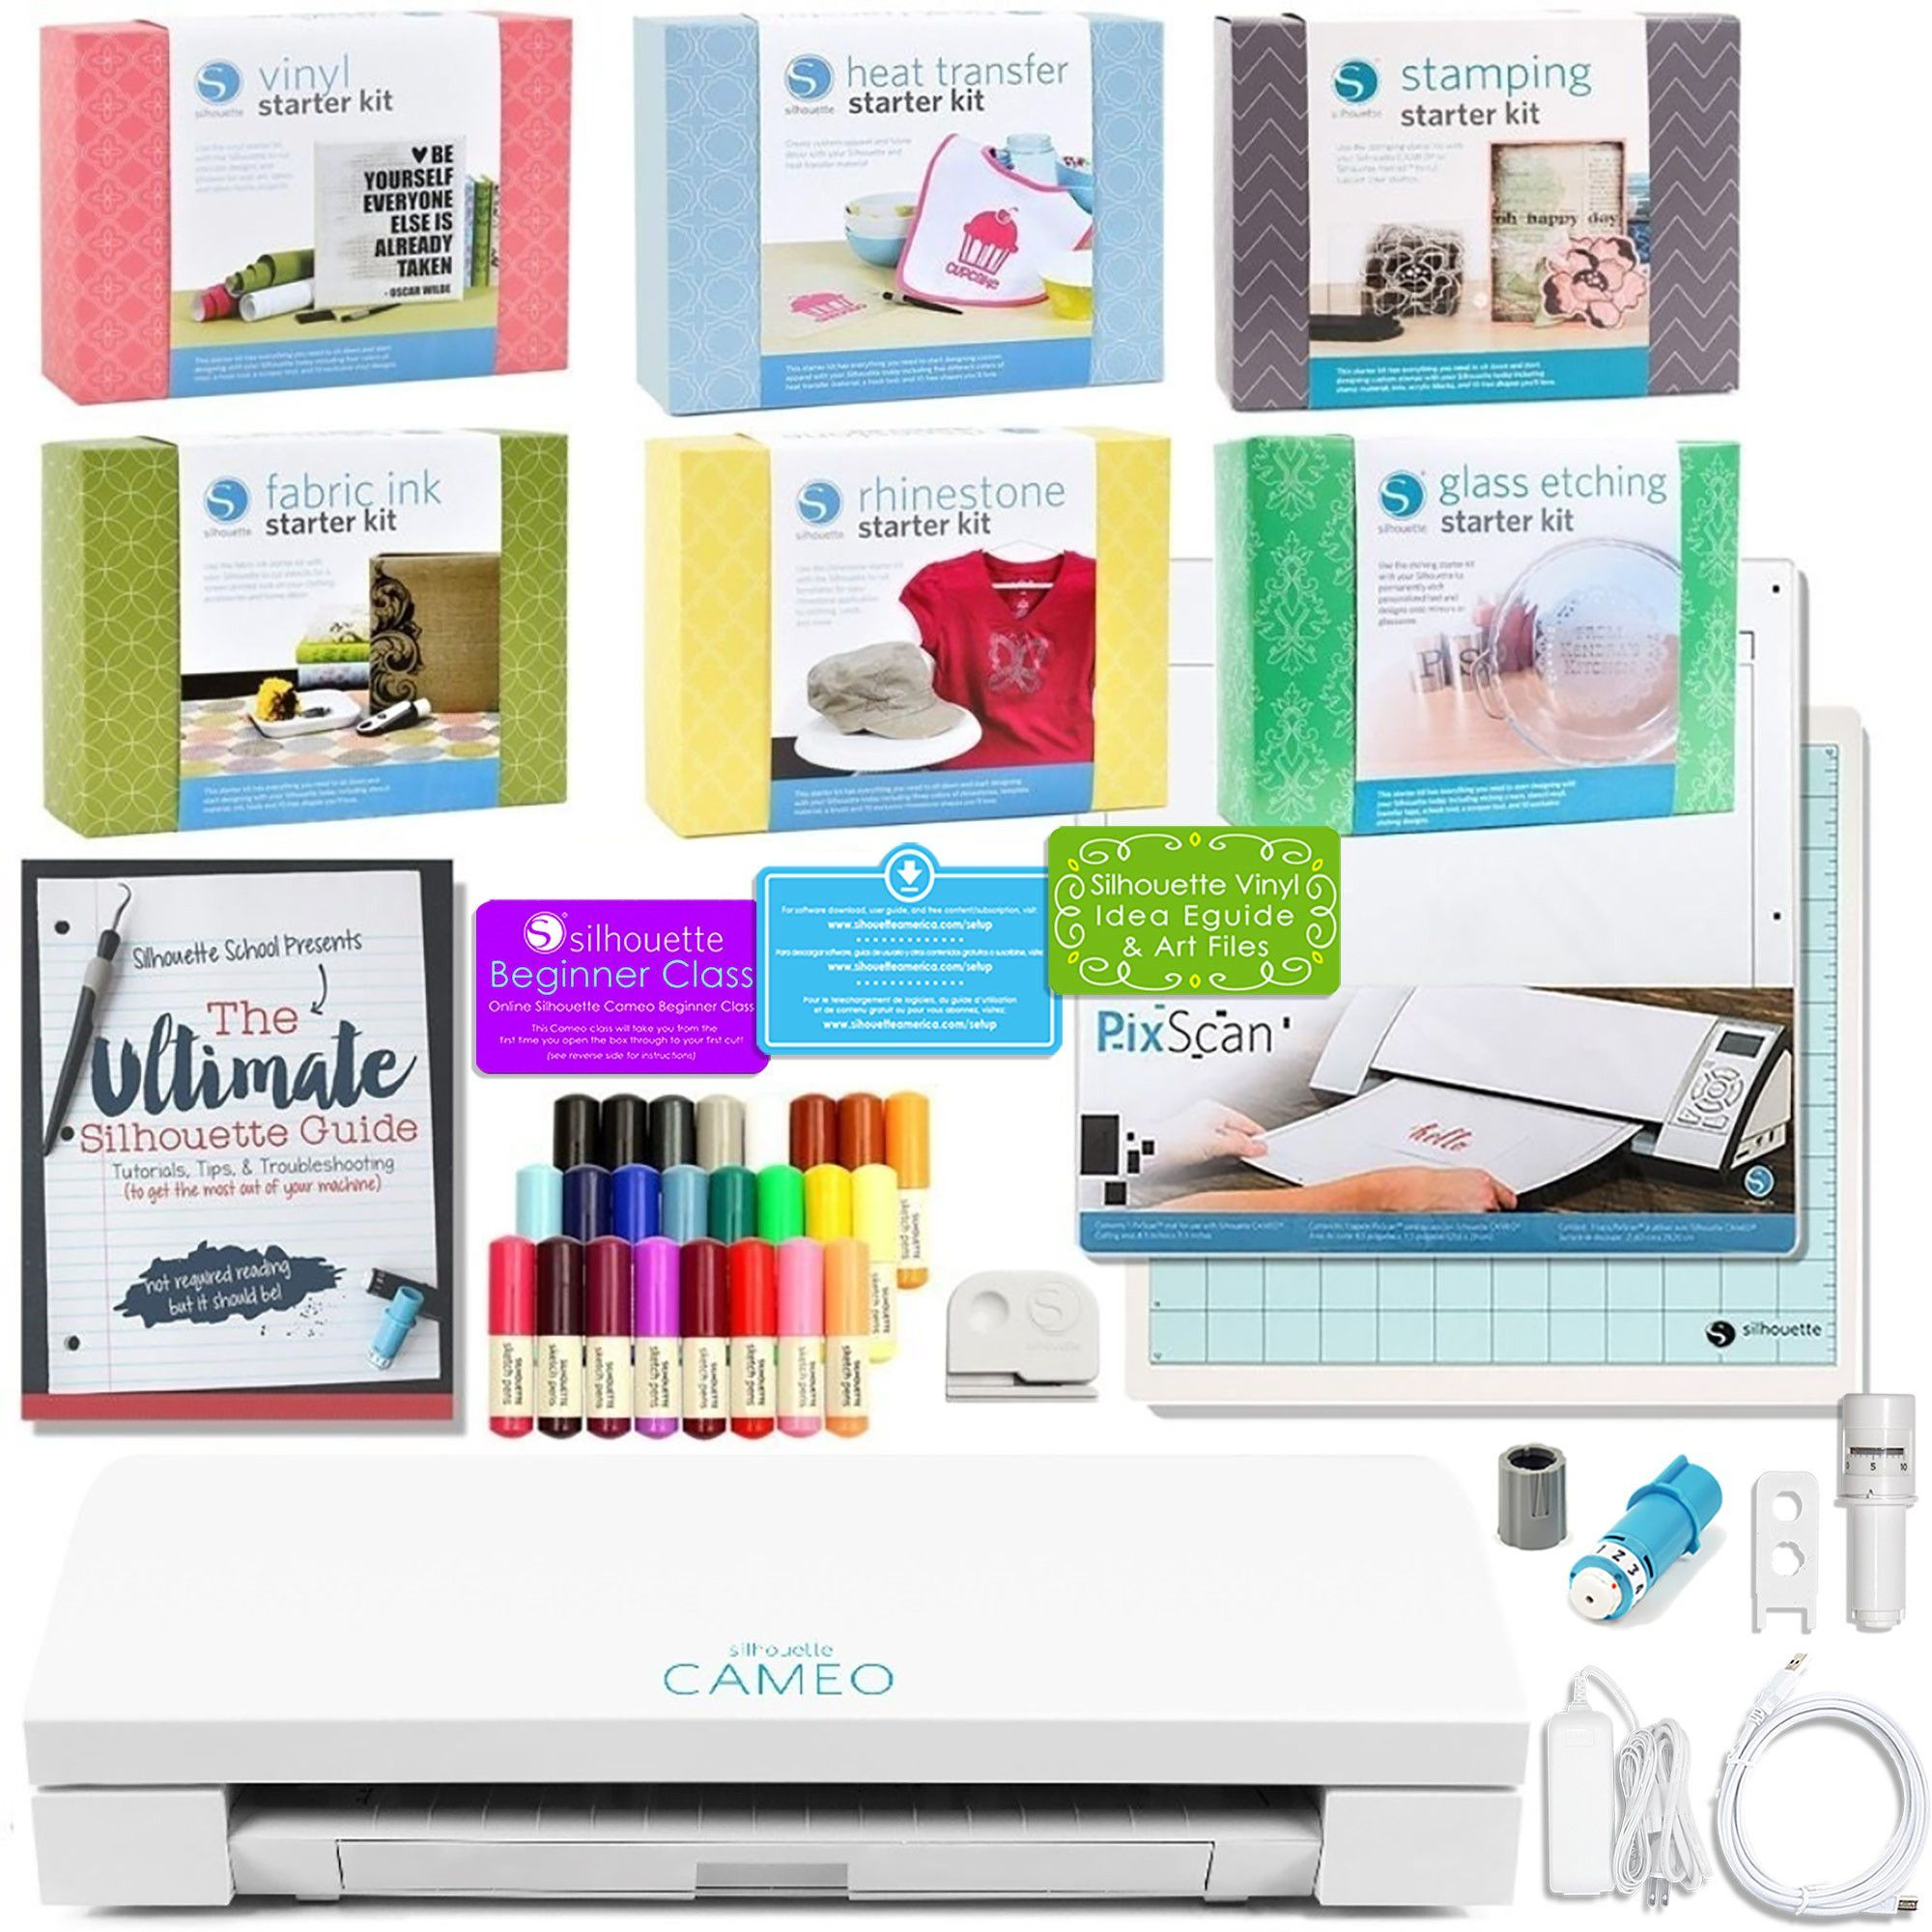 Silhouette Cameo 3 Bluetooth with Glass Etching and Stamping Starter Kits